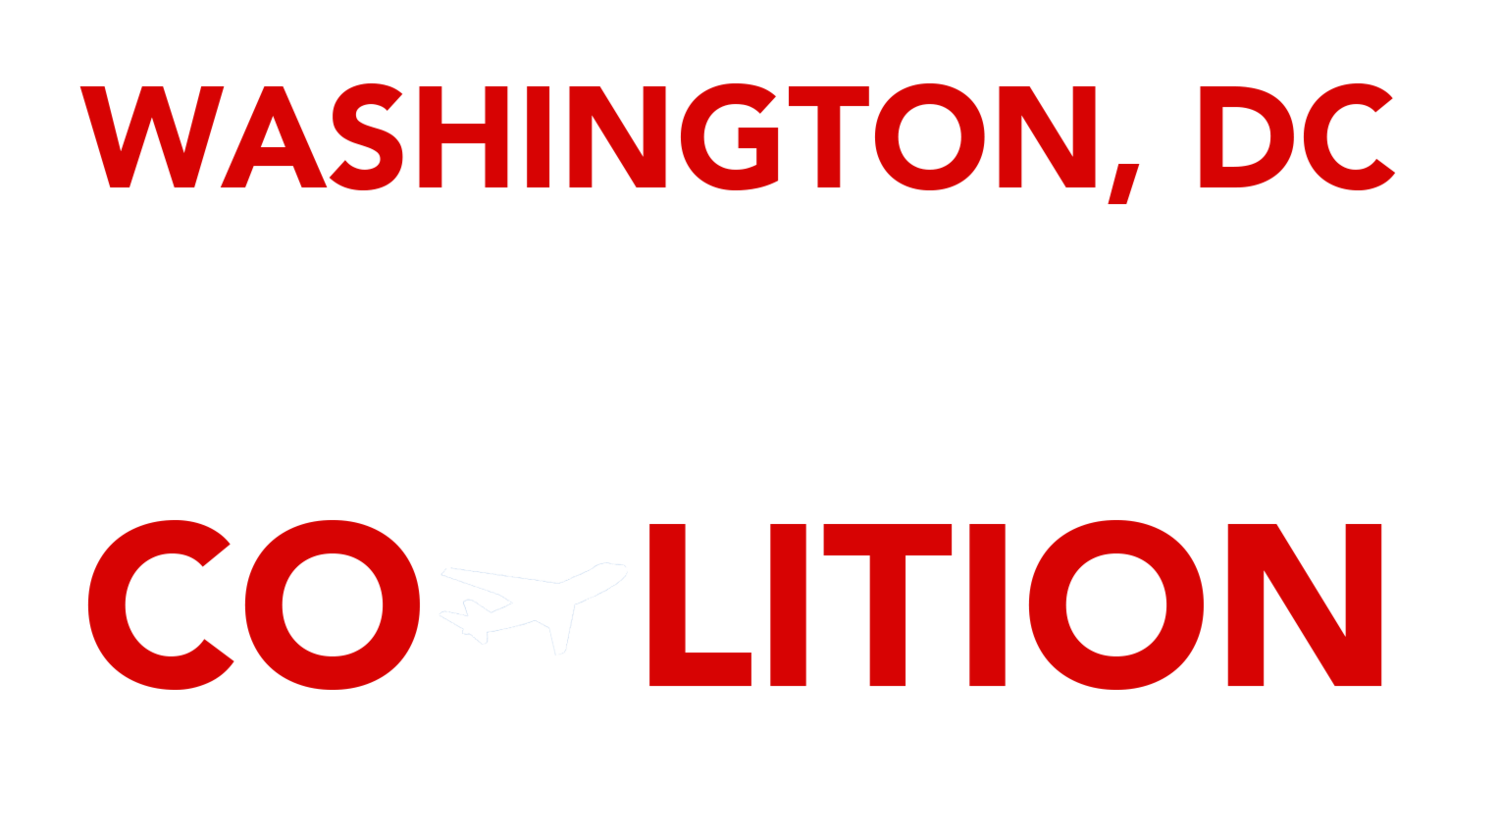 DC Fair Skies Coalition